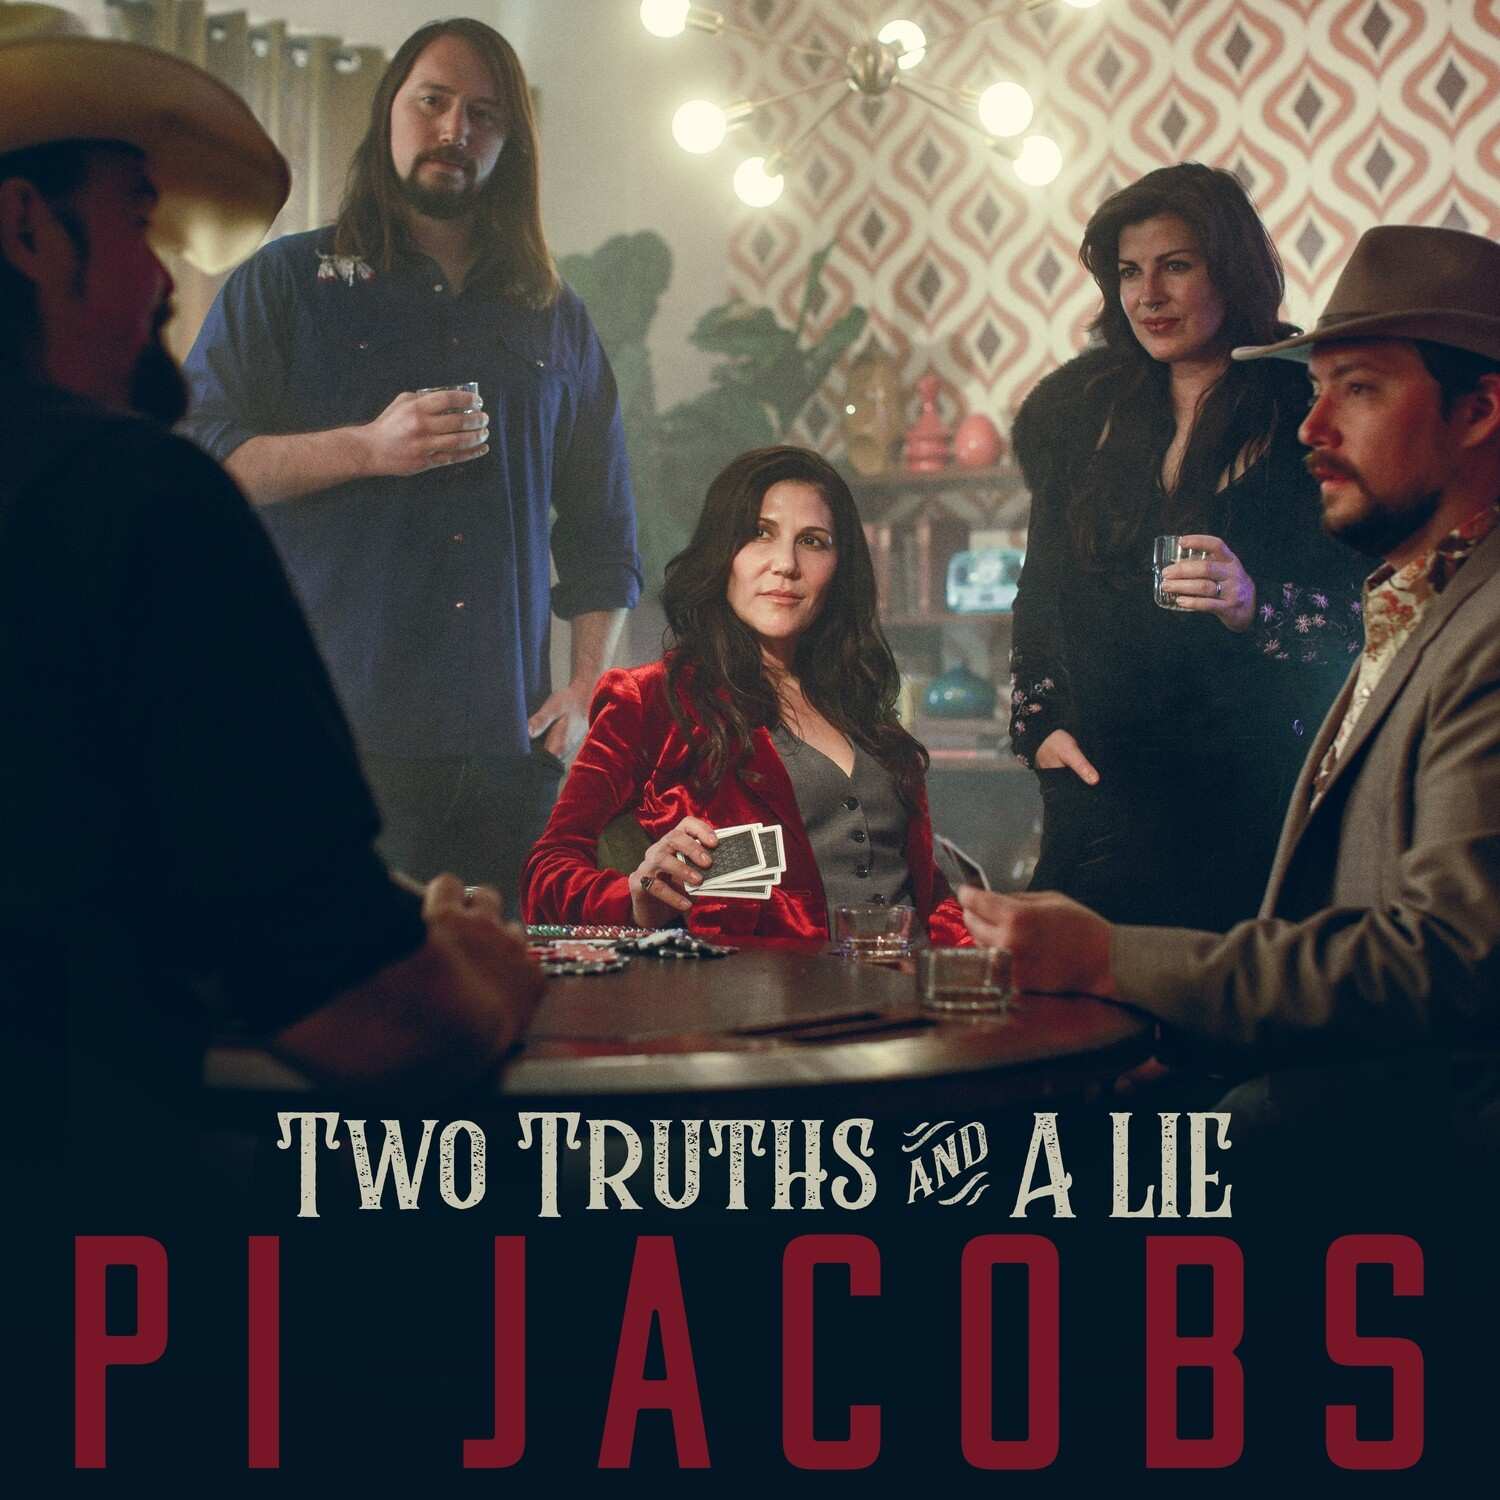 Pi Jacobs - Two Truths And A Lie